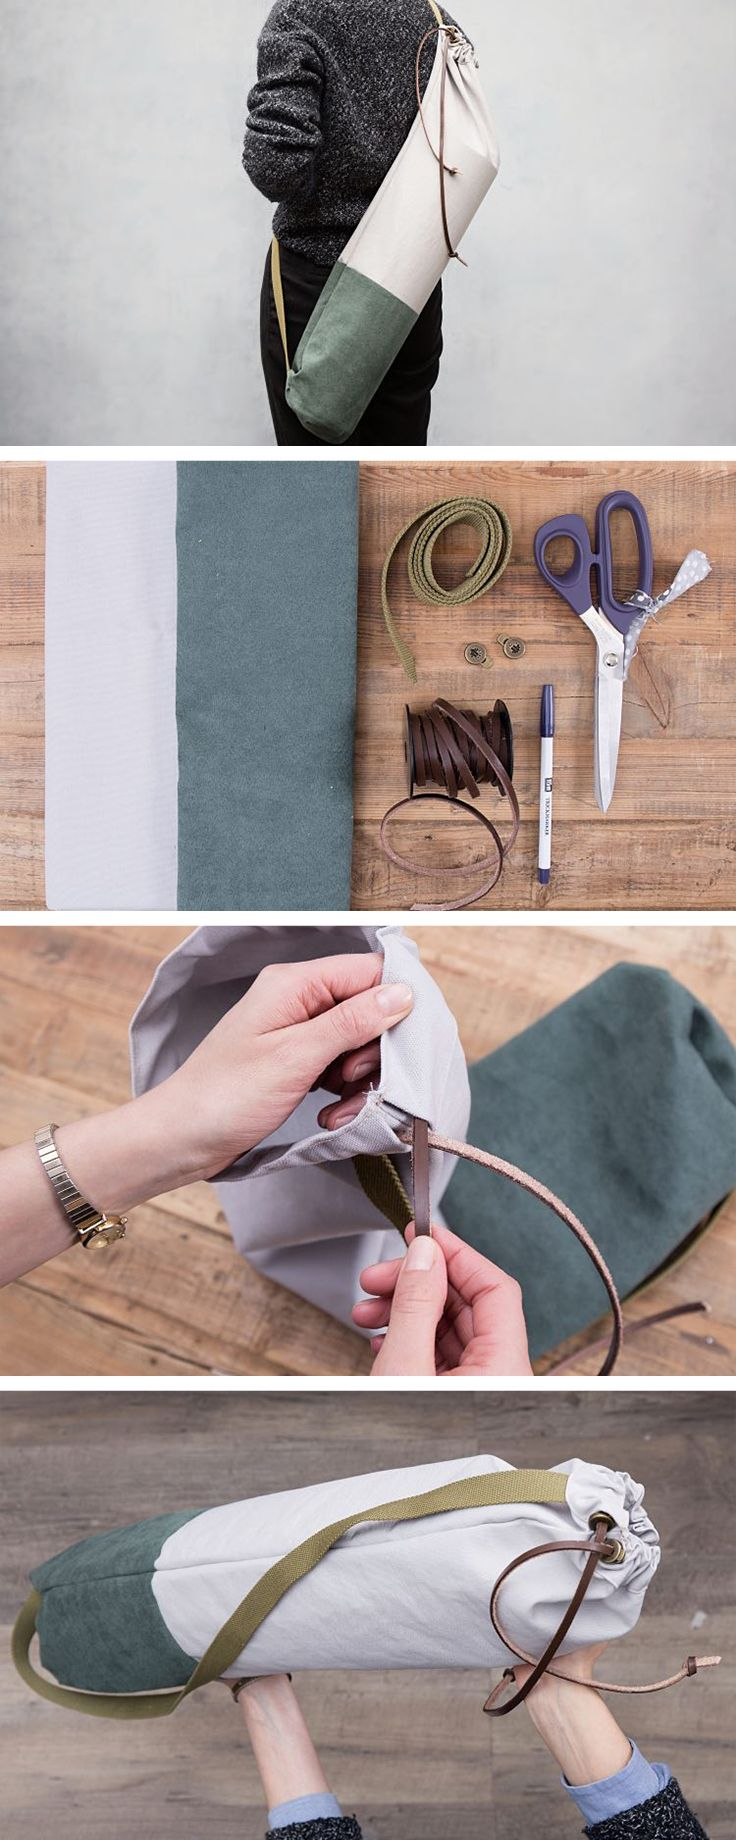 Yoga for beginners & inspiration: DIY tutorial sewing: zelf een yogatas maken van canvas en suède leer